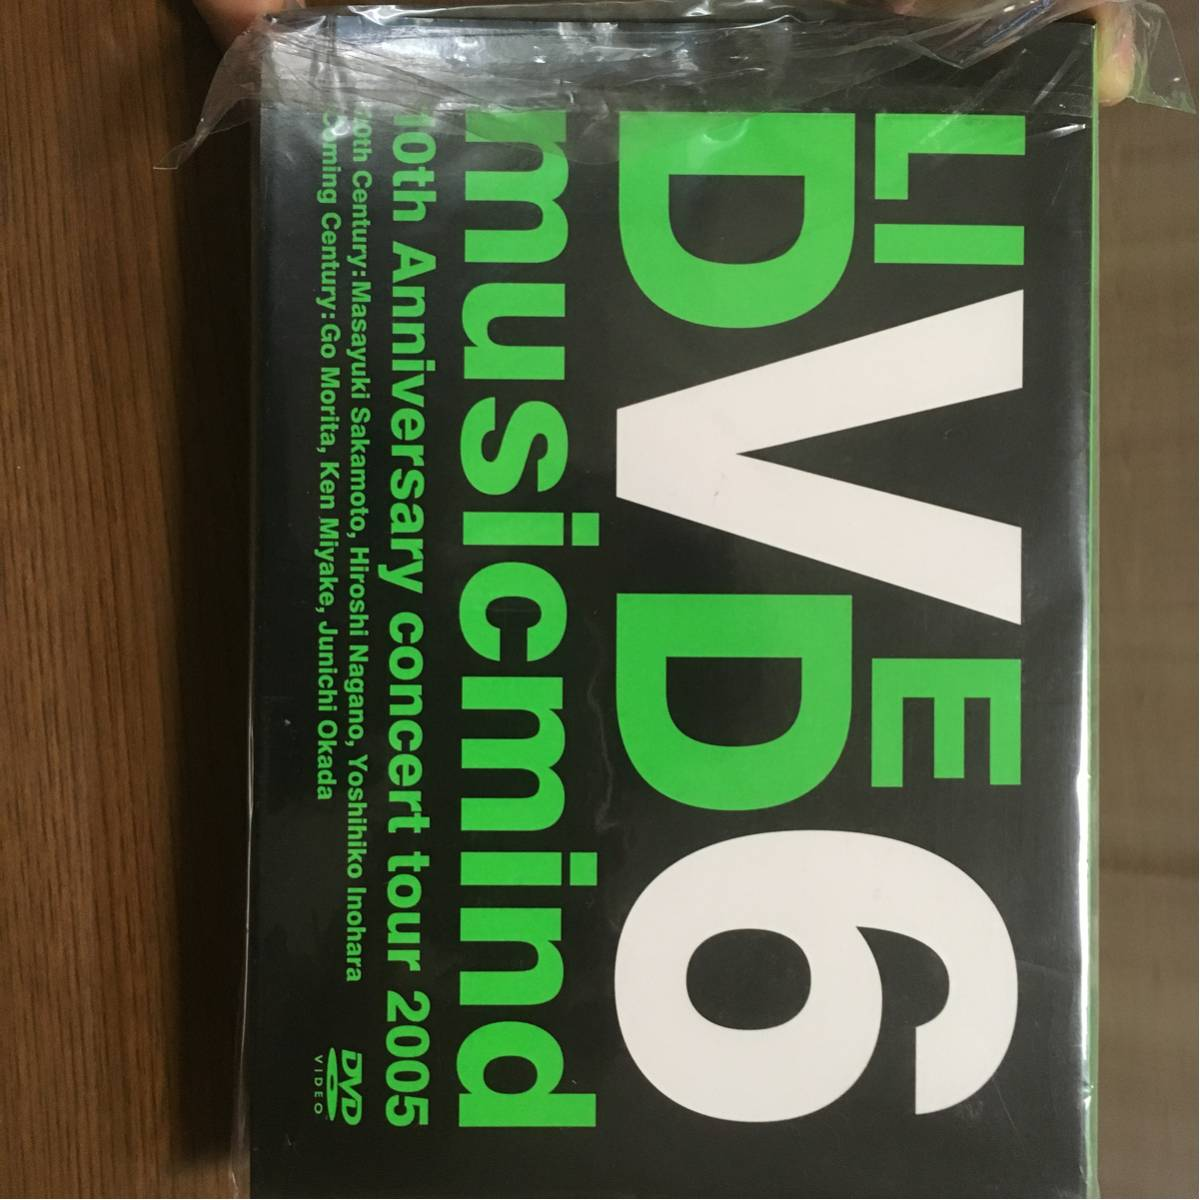 V6 LIVE DVD musicmind 10th anniversary concert tour 2005 including 4 discs コンサートグッズの画像